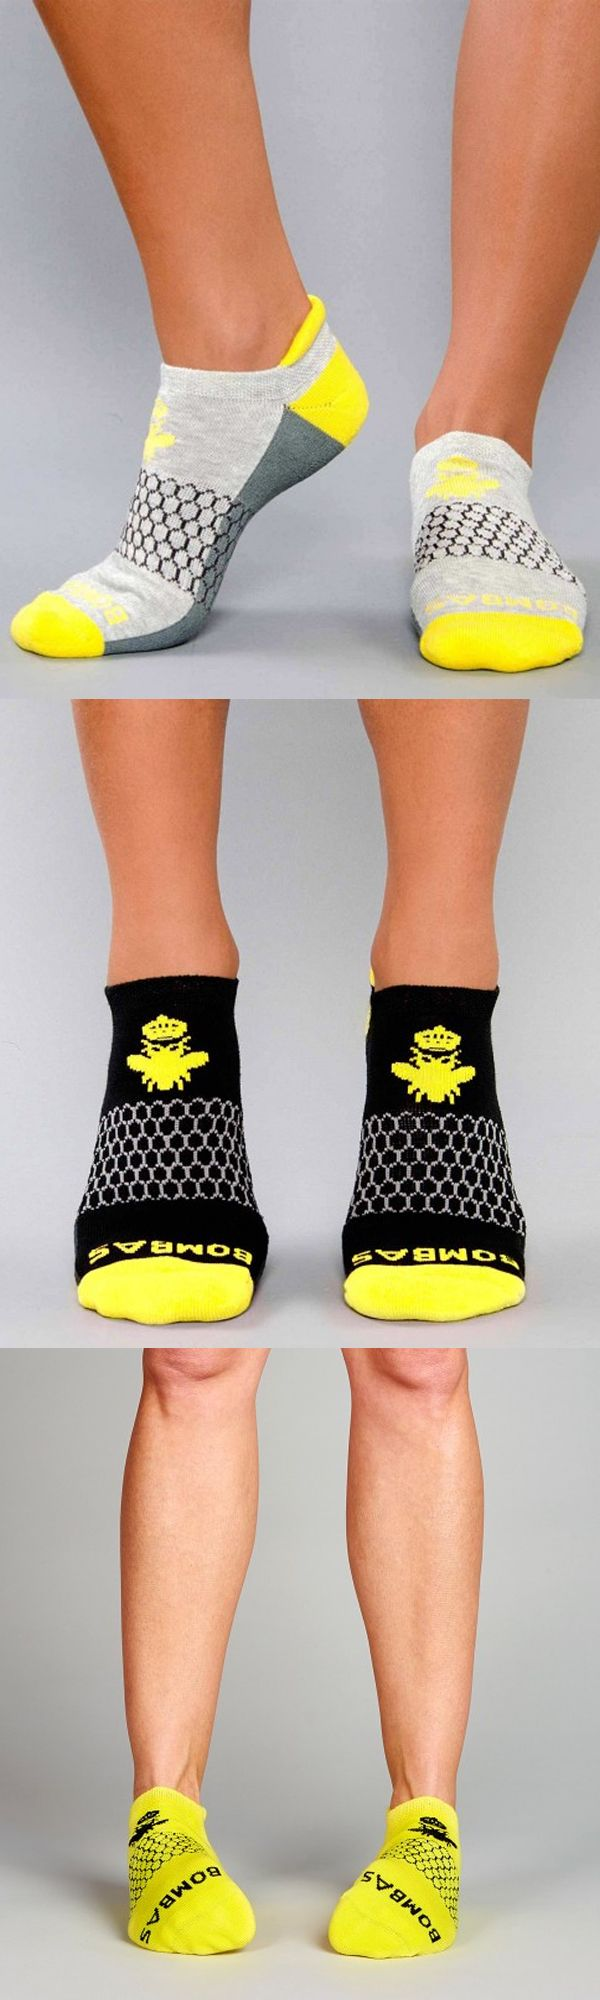 Whether you're the queen bee, a worker bee, or a busy bee, you need great socks to get you through the day. Quality materials and tested features make for the perfect socks to outfit the whole hive.   http://www.bombas.com/women?filter=5&utm_source=Pinterest&utm_medium=Social&utm_campaign=1.9P